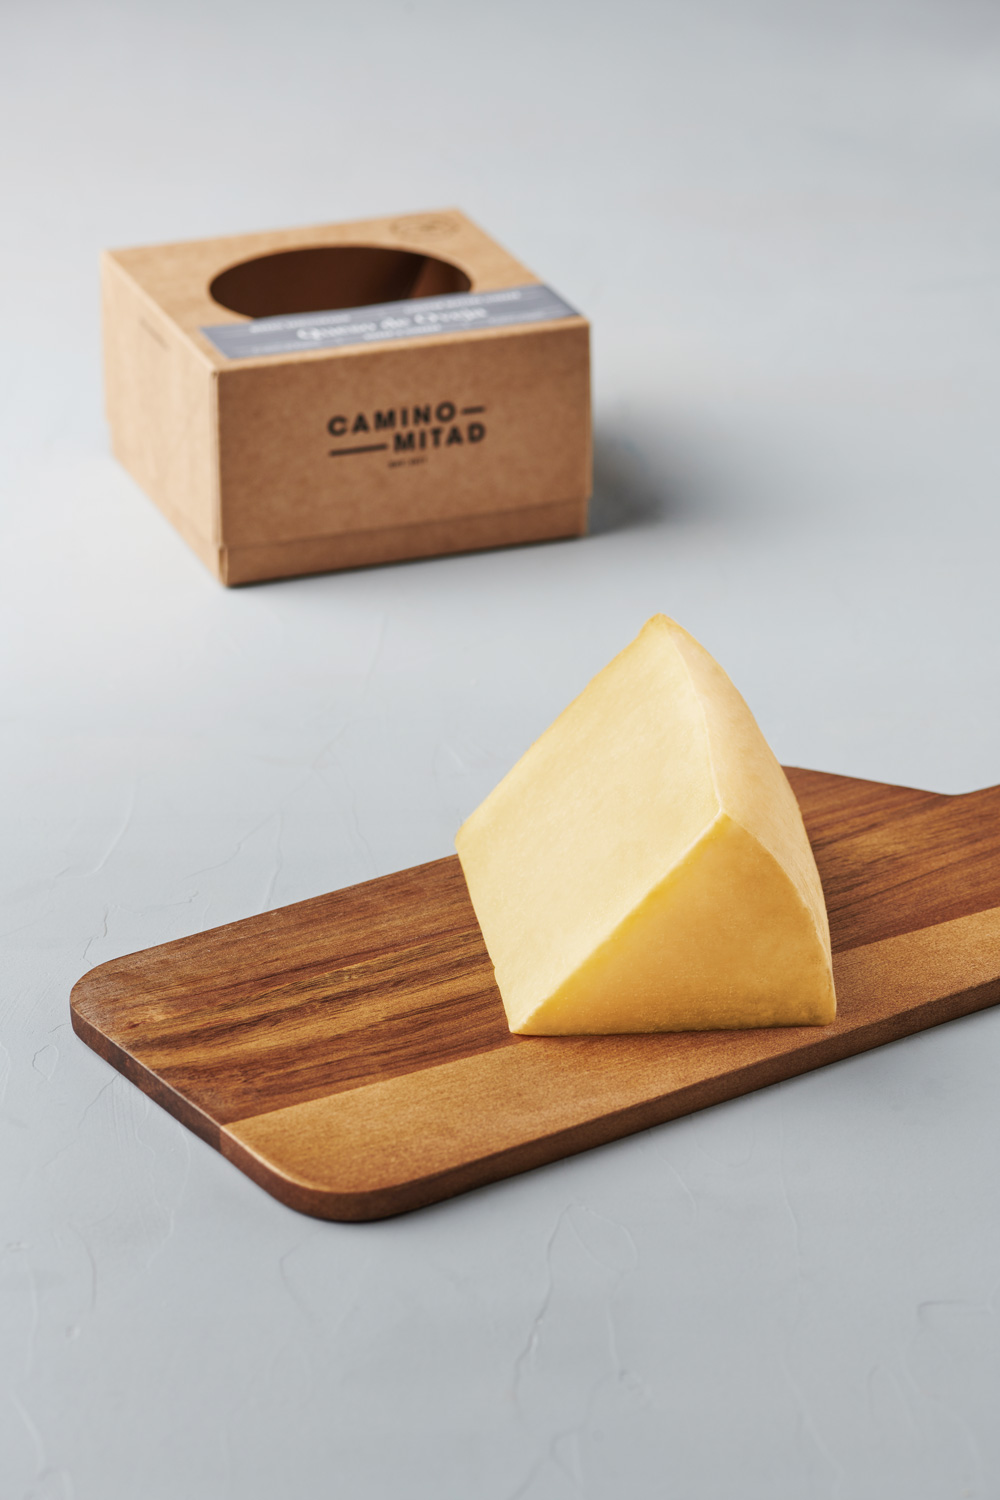 Queso de oveja semicurado Lighter Mature Sheep's Cheese - Camino Mitad